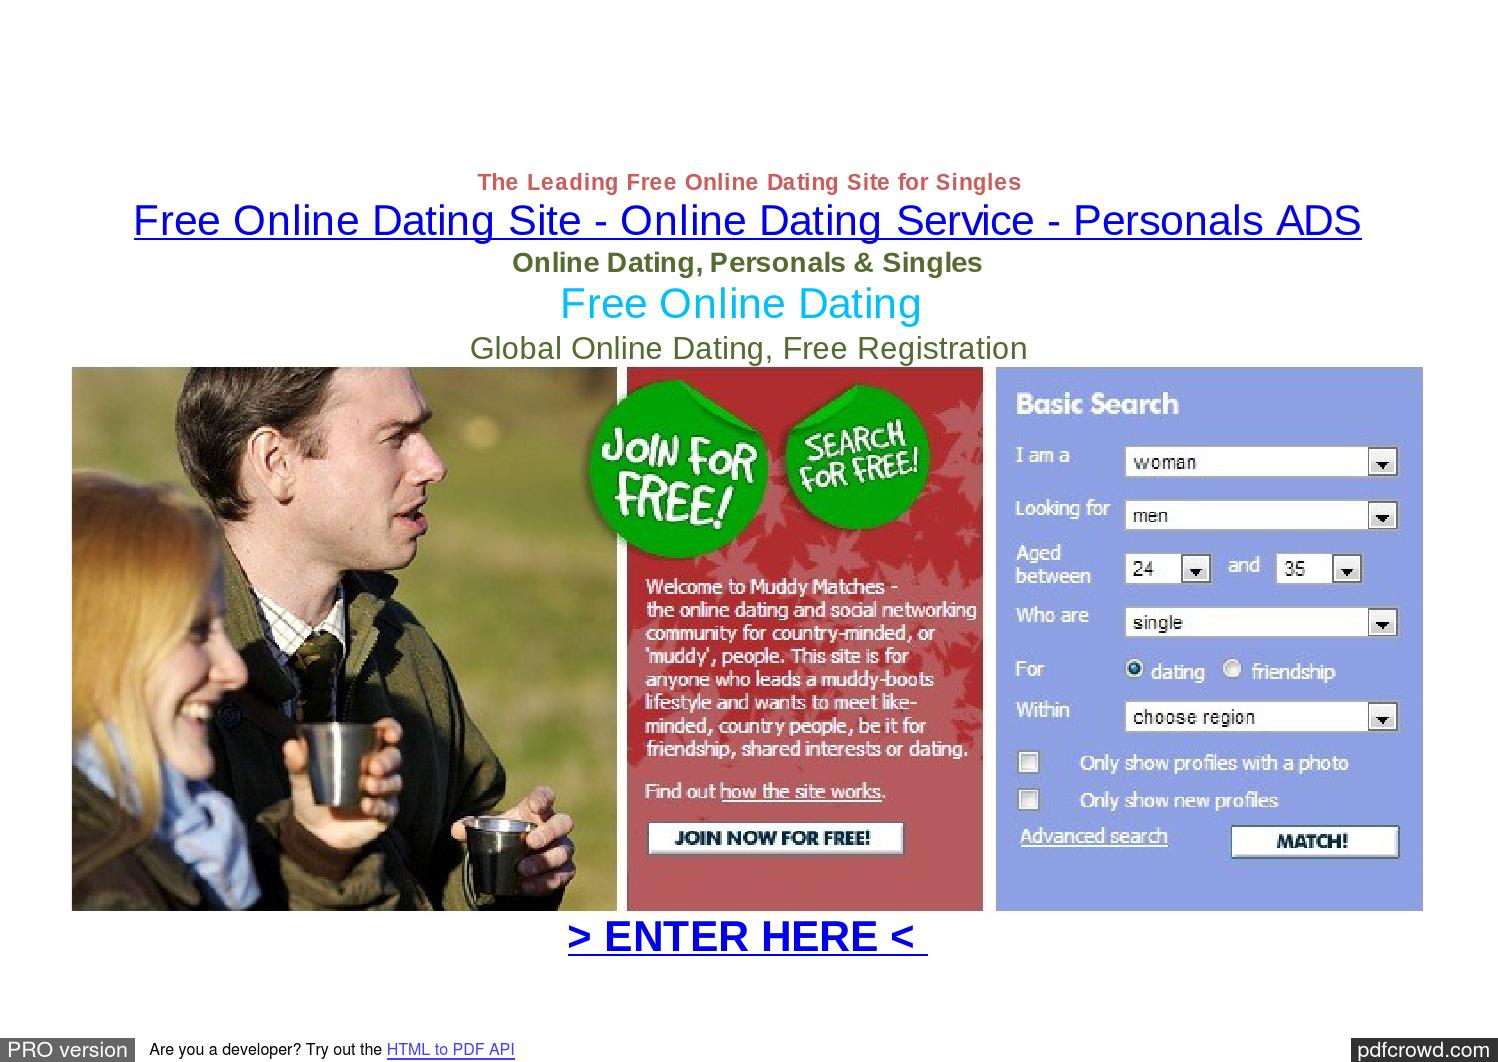 The Online Dating Site for 50 Men and Women